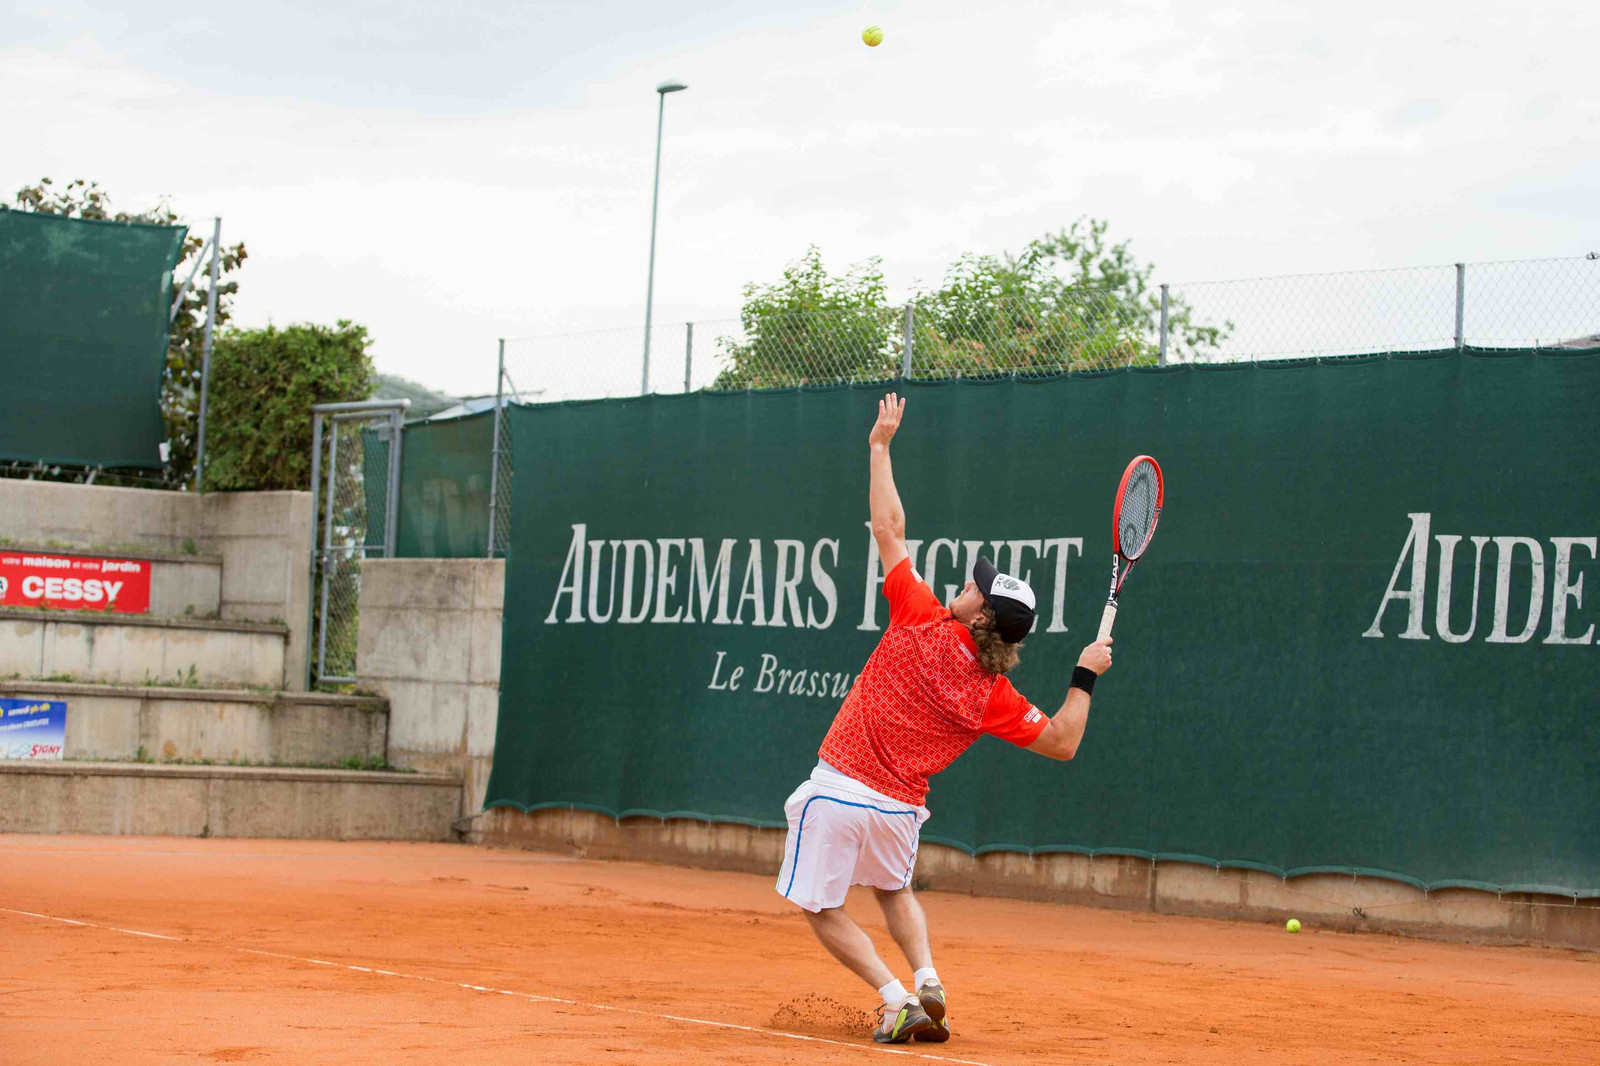 Nyon,Tennis Club Nyon, tennis, Interclubs de LNA Messieurs, Nyon ...